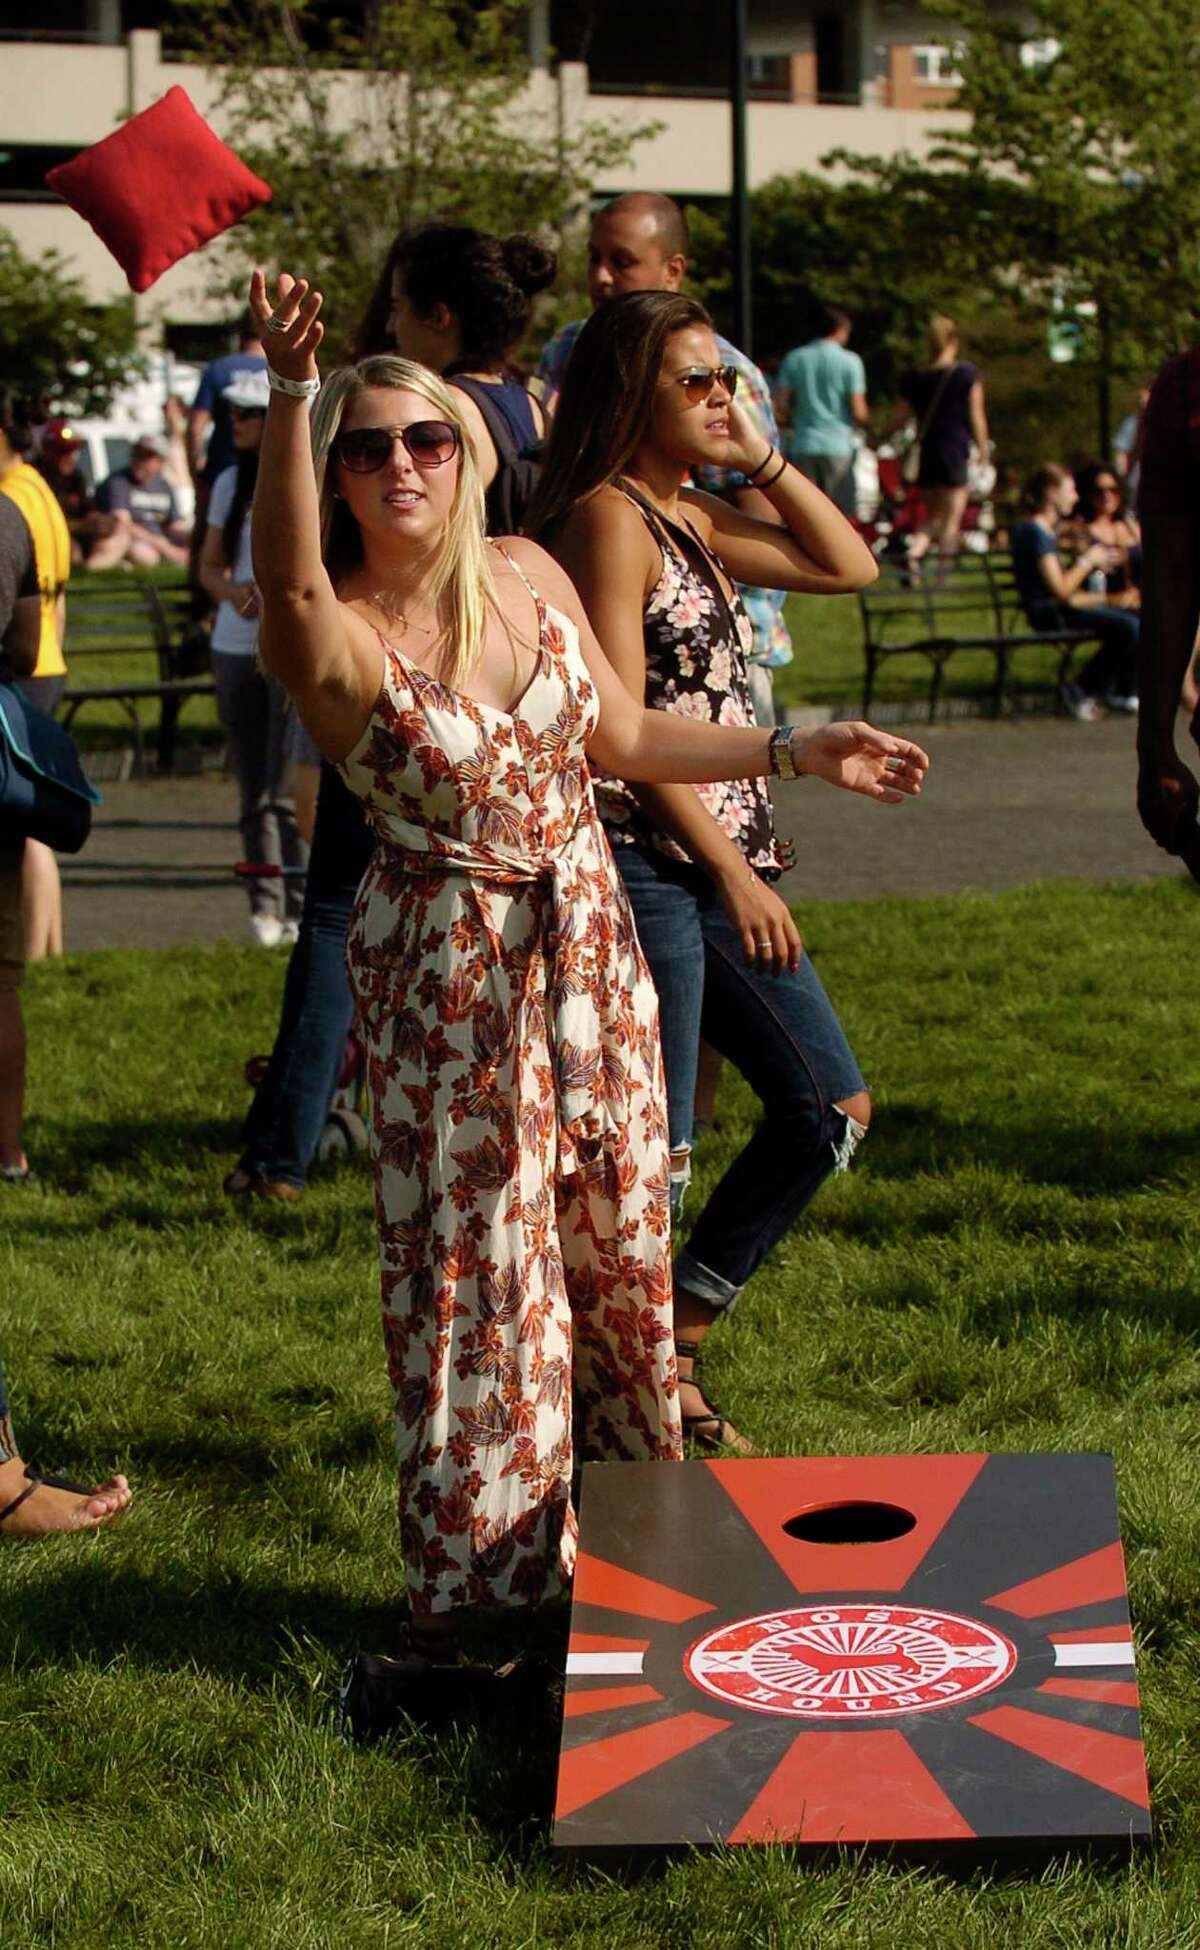 Emily Weiner of Stamford tosses a bean bag as she plays a round of Cornhole with friends during the Hey Stamford Food Fest at Mill River Park in Stamford, Connecticut on Saturday, August 25, 2017.